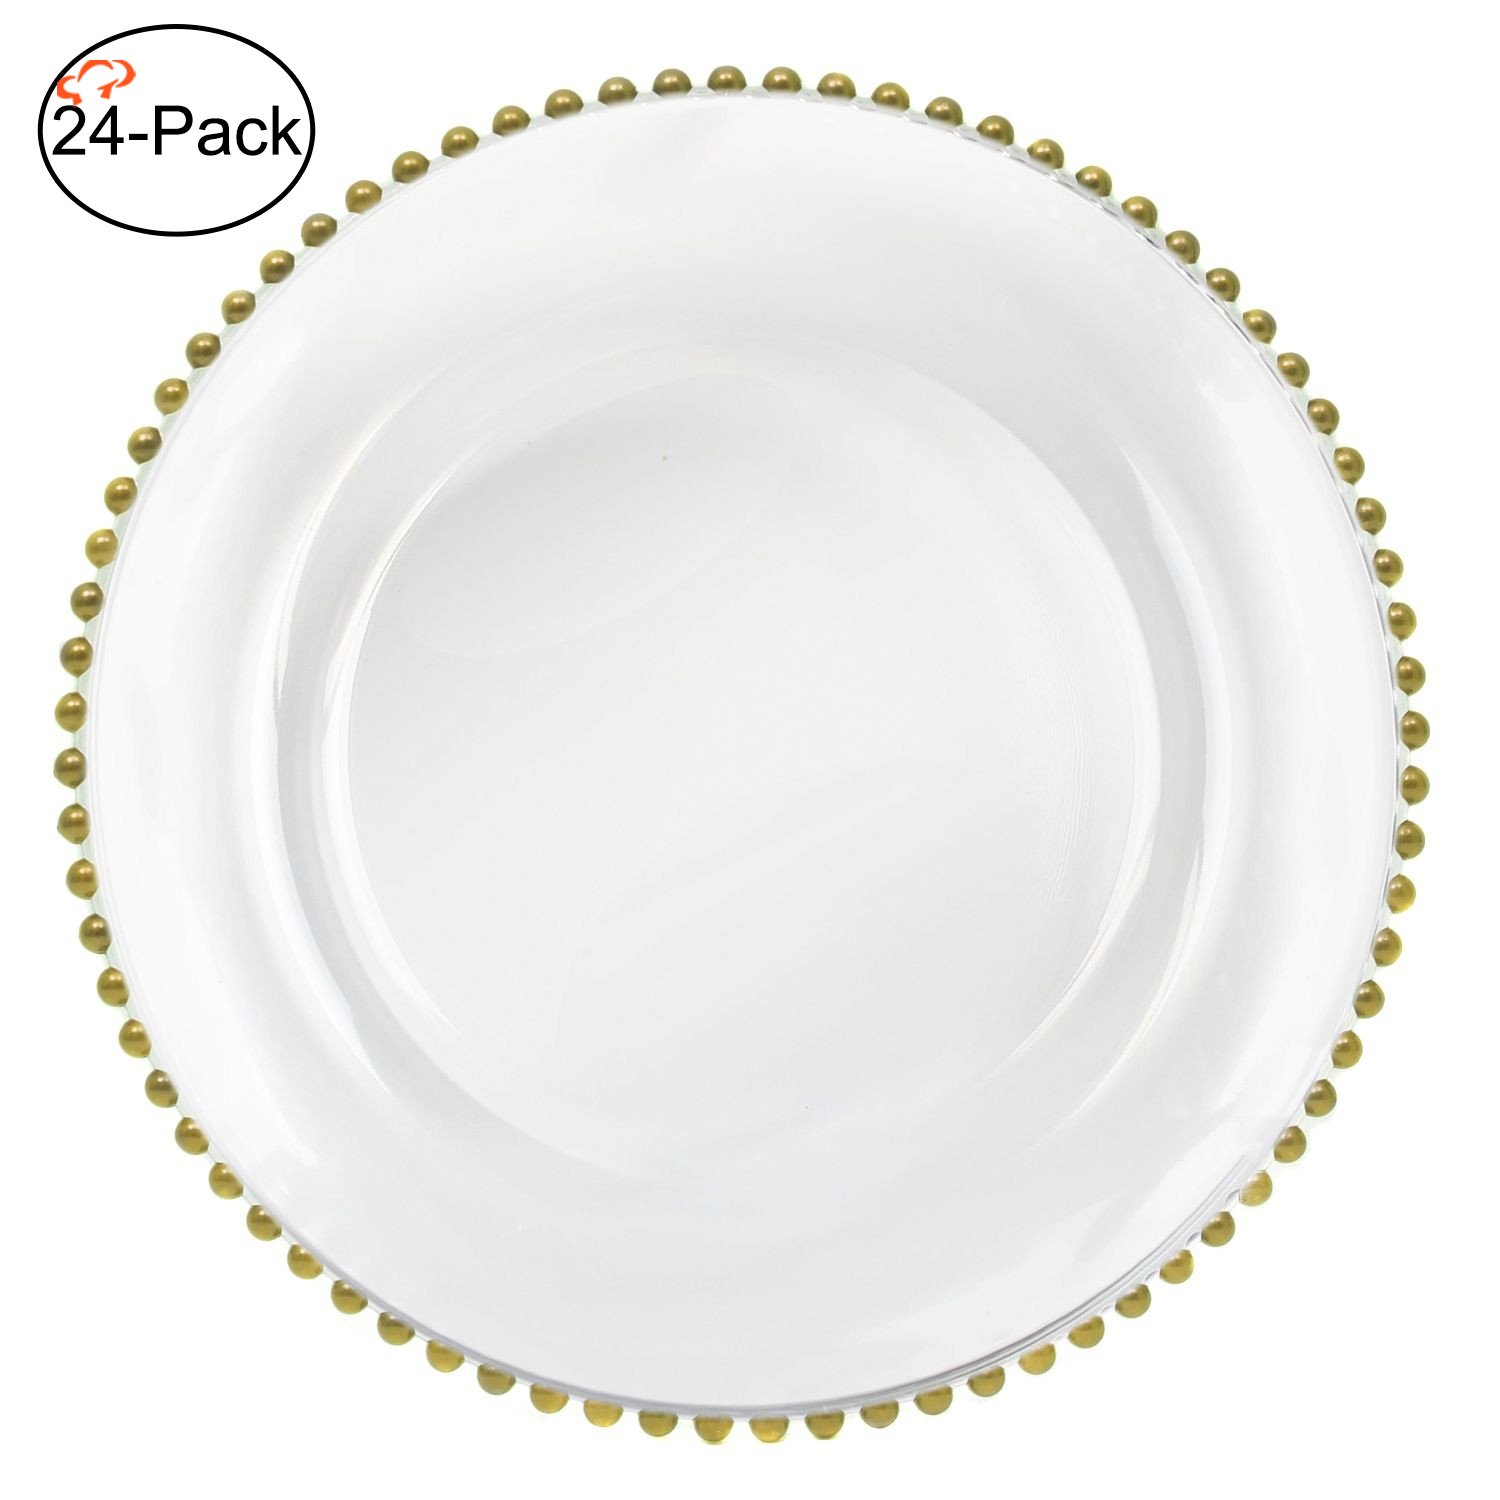 Tiger Chef 13-inch Gold Round Beaded Glass Charger Plates Set of 2,4,6, 12 or 24 Dinner Chargers (24-Pack) by Tiger Chef (Image #2)